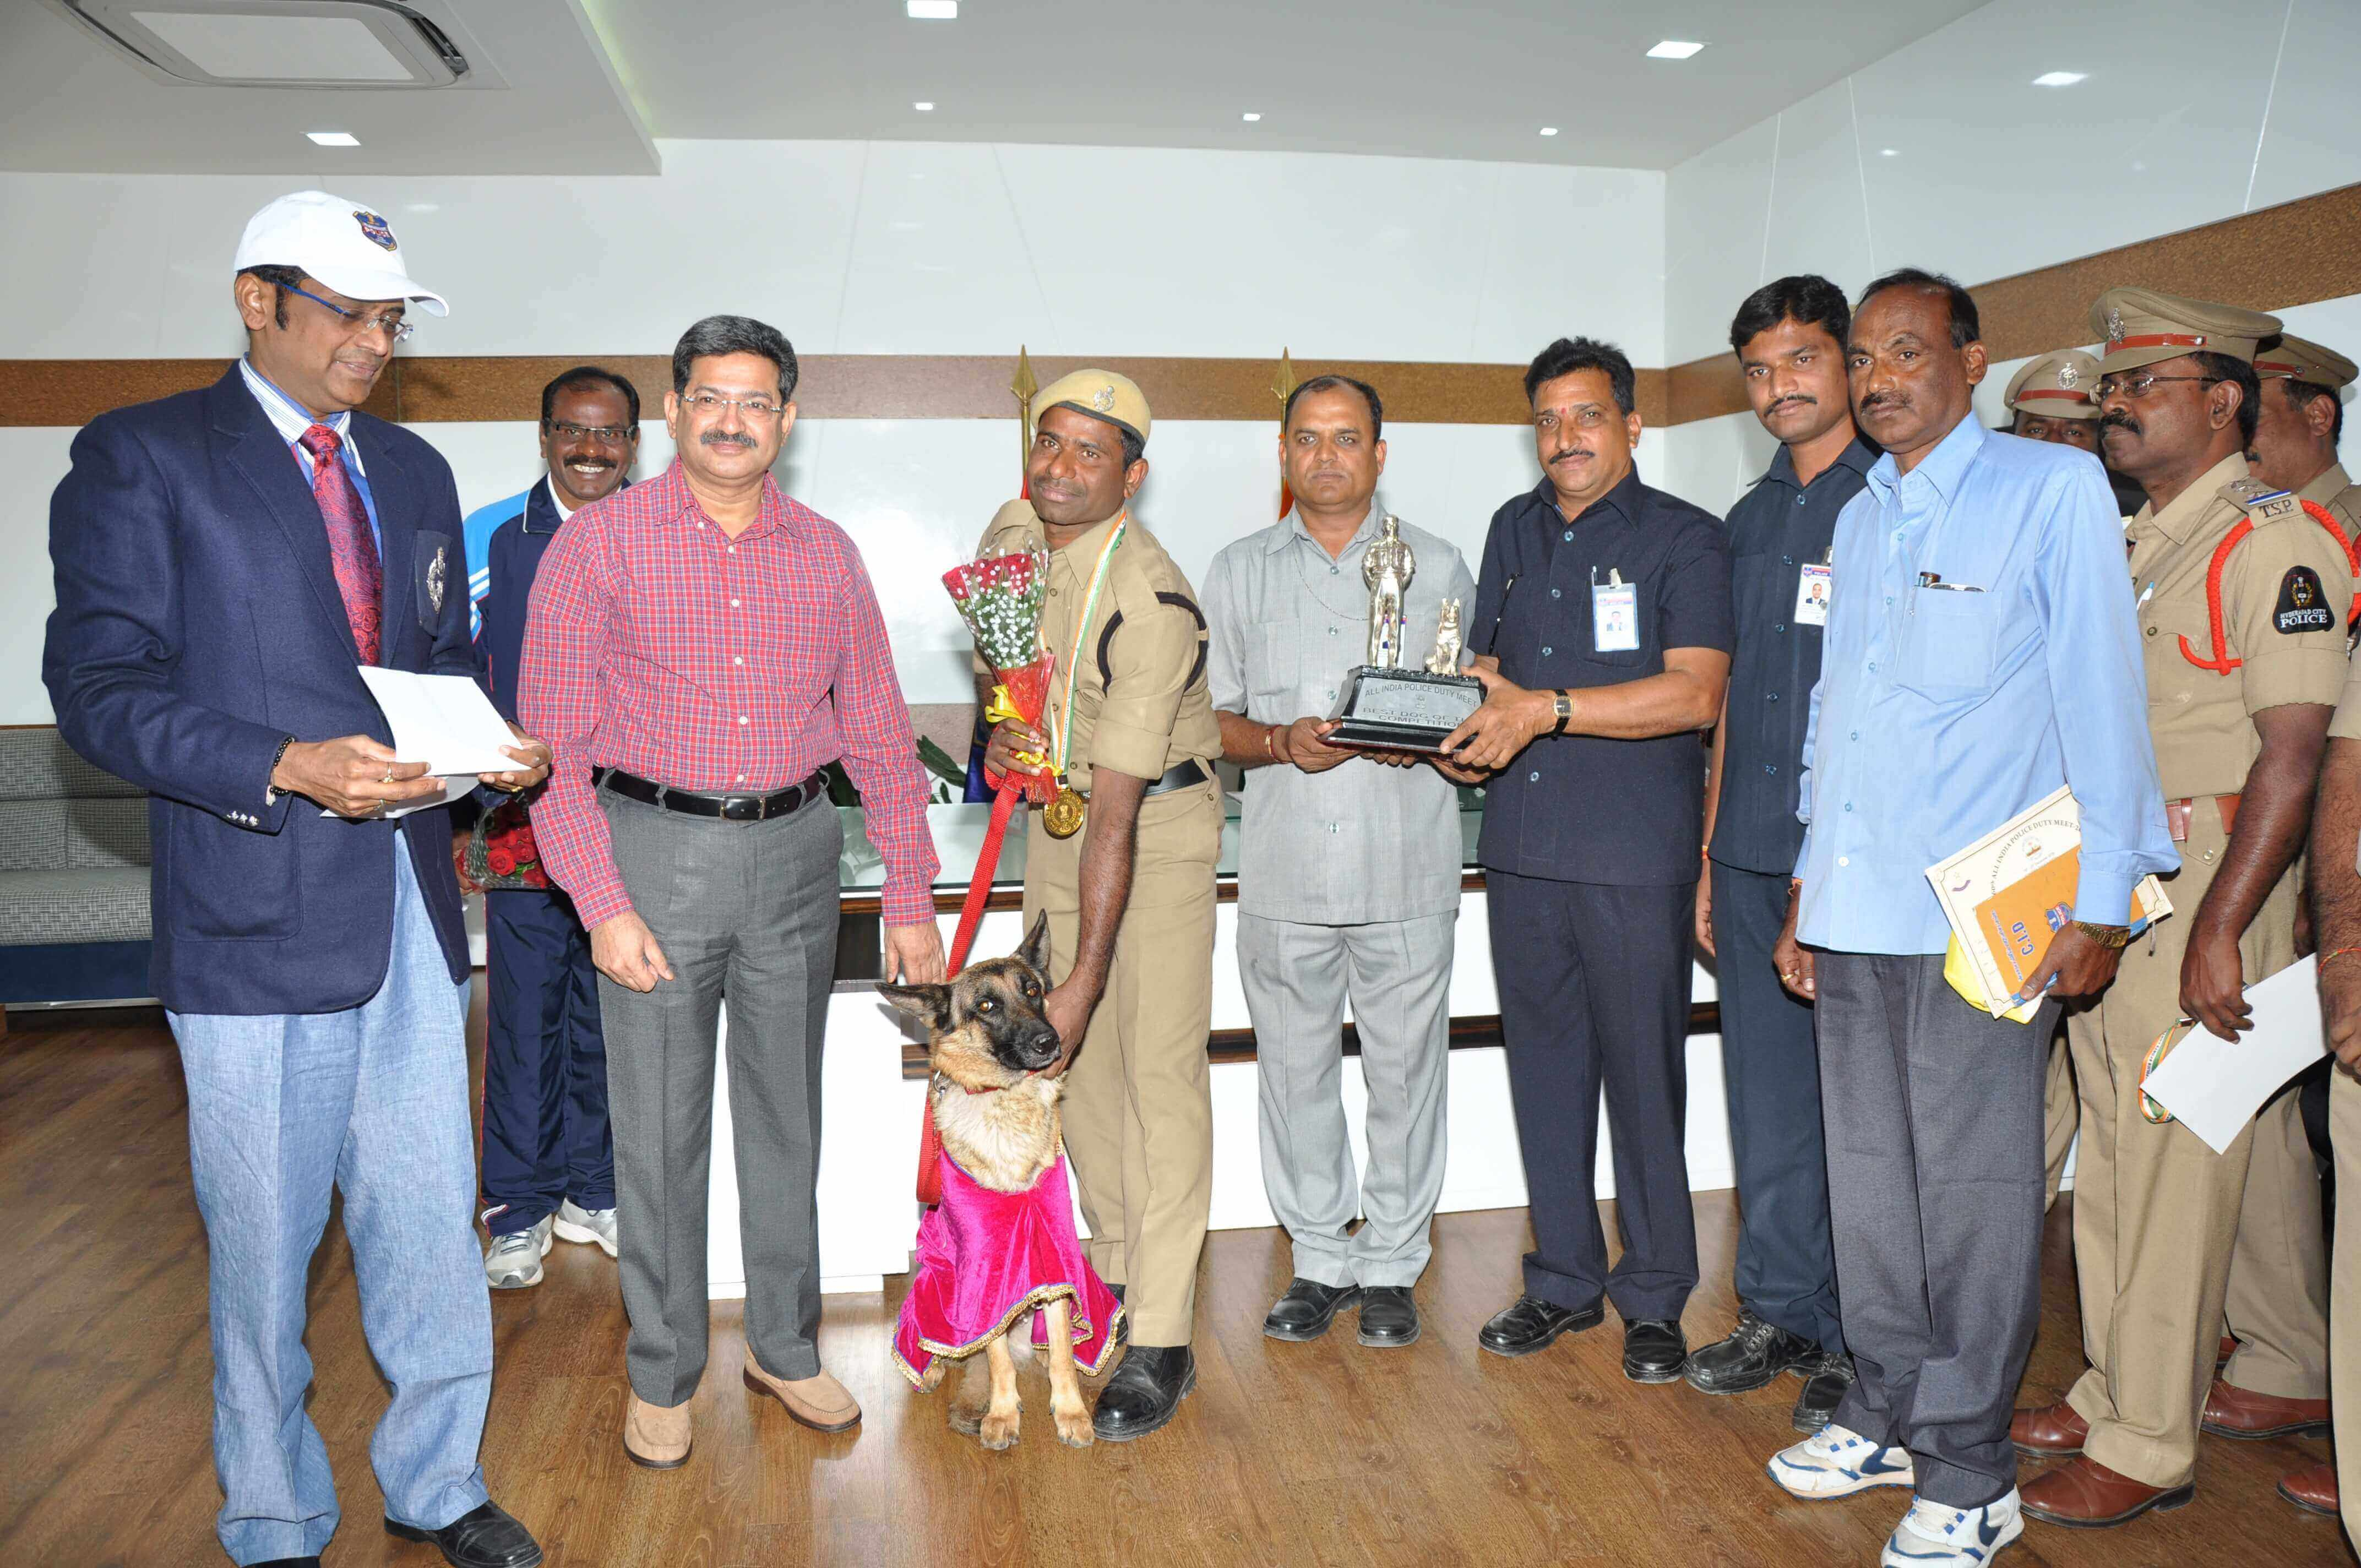 Telangana Police team which won the Overall Championship Trophy met DGP Anurag Sharma on 27.12.2016